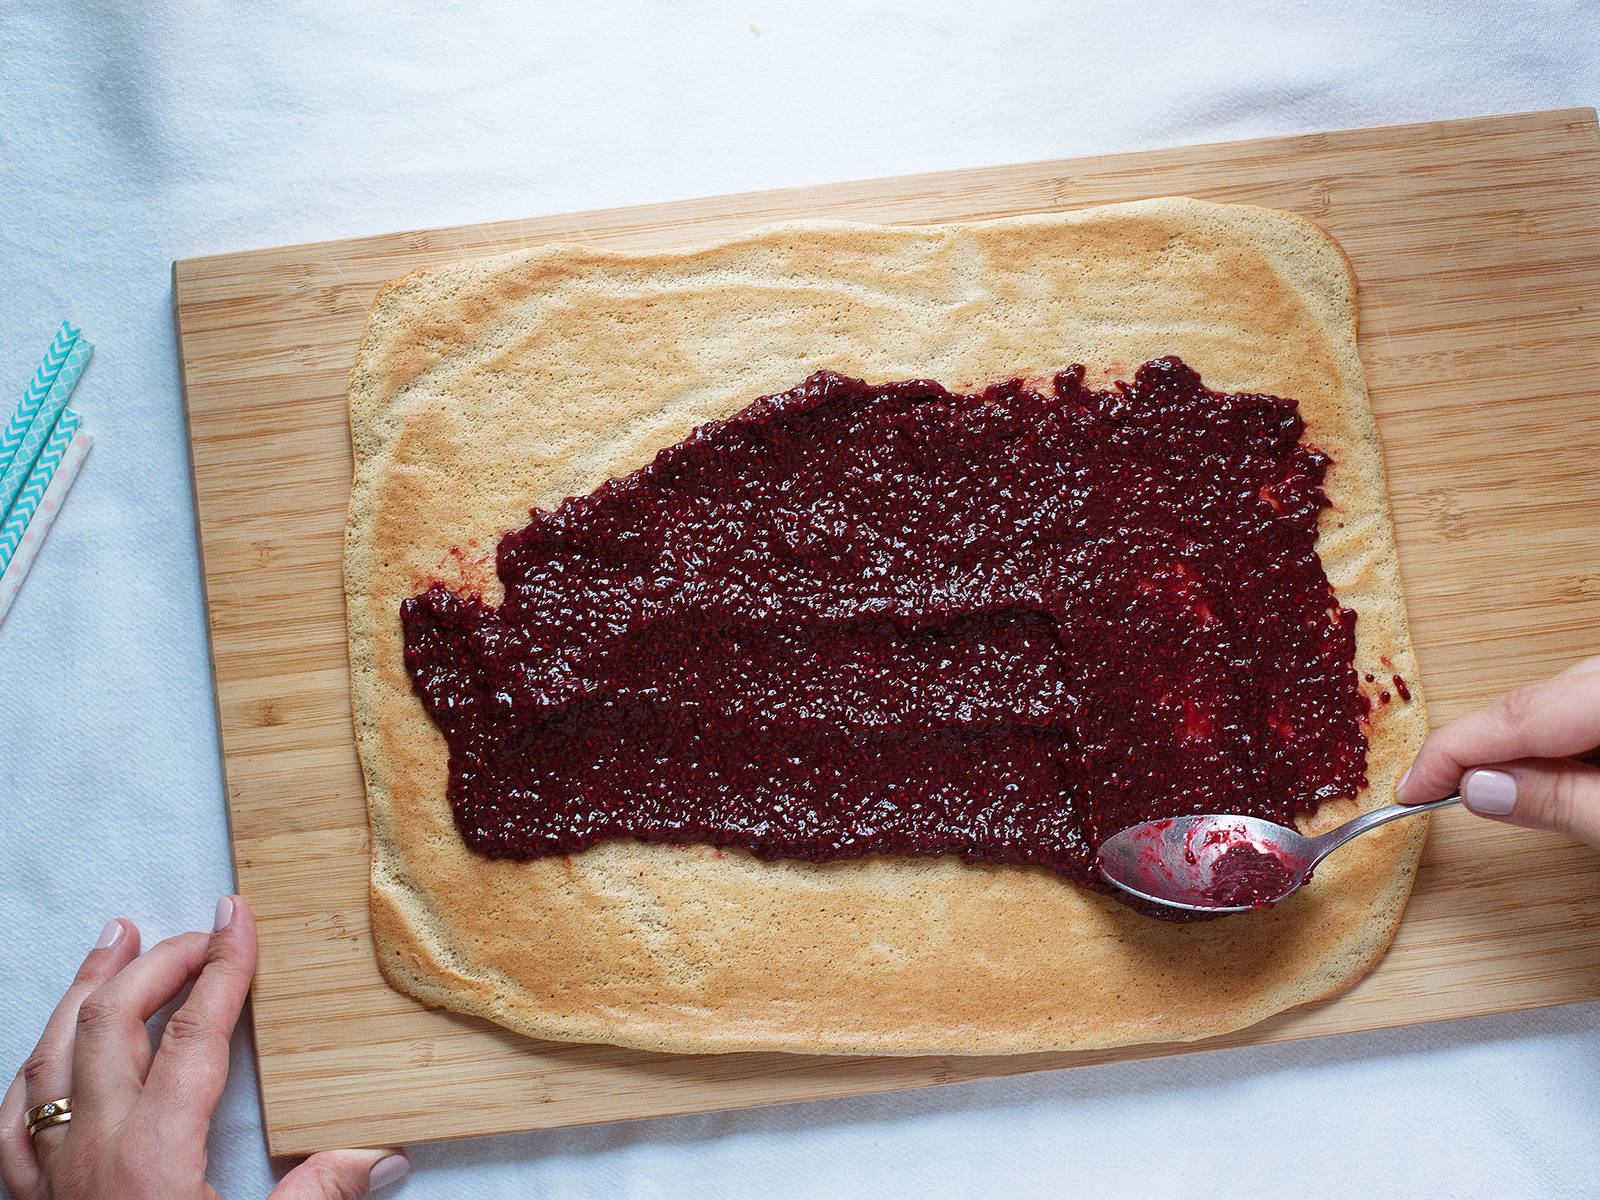 Take cake out of the oven and turn onto a clean kitchen towel. Remove parchment paper and, if necessary, turn cake so that the smooth side faces downwards. Coat cake with chia-raspberry jam. Use kitchen towel to roll up the cake tightly.